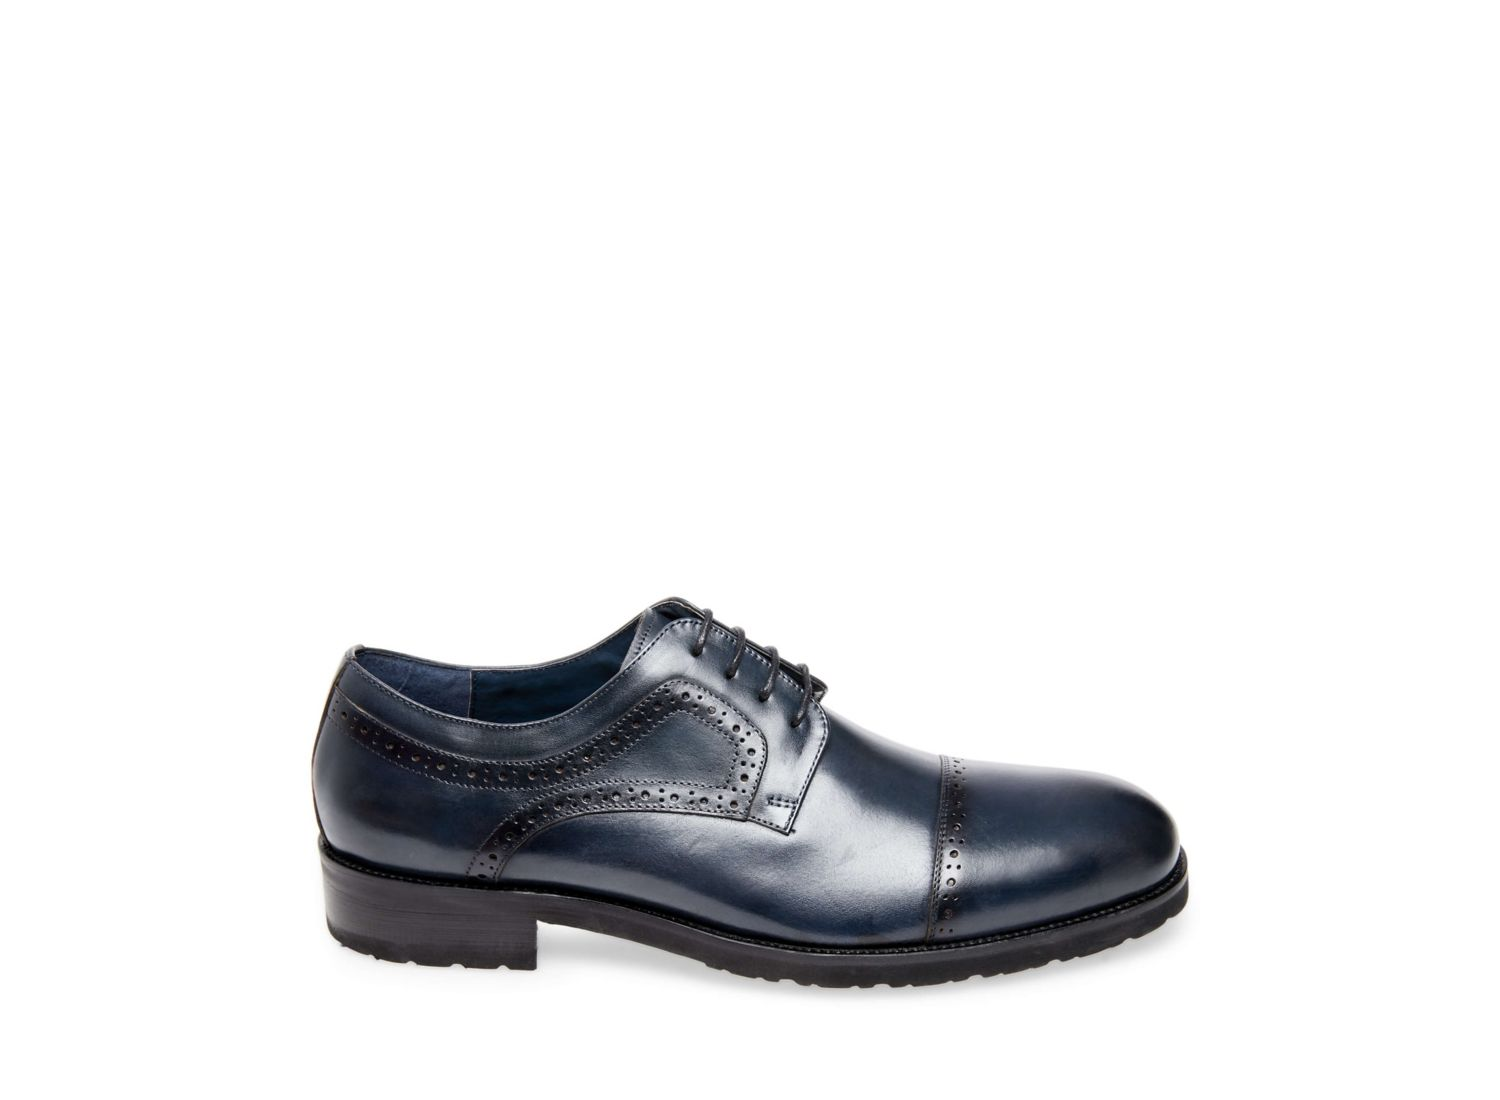 WEBBER NAVY LEATHER - Steve Madden